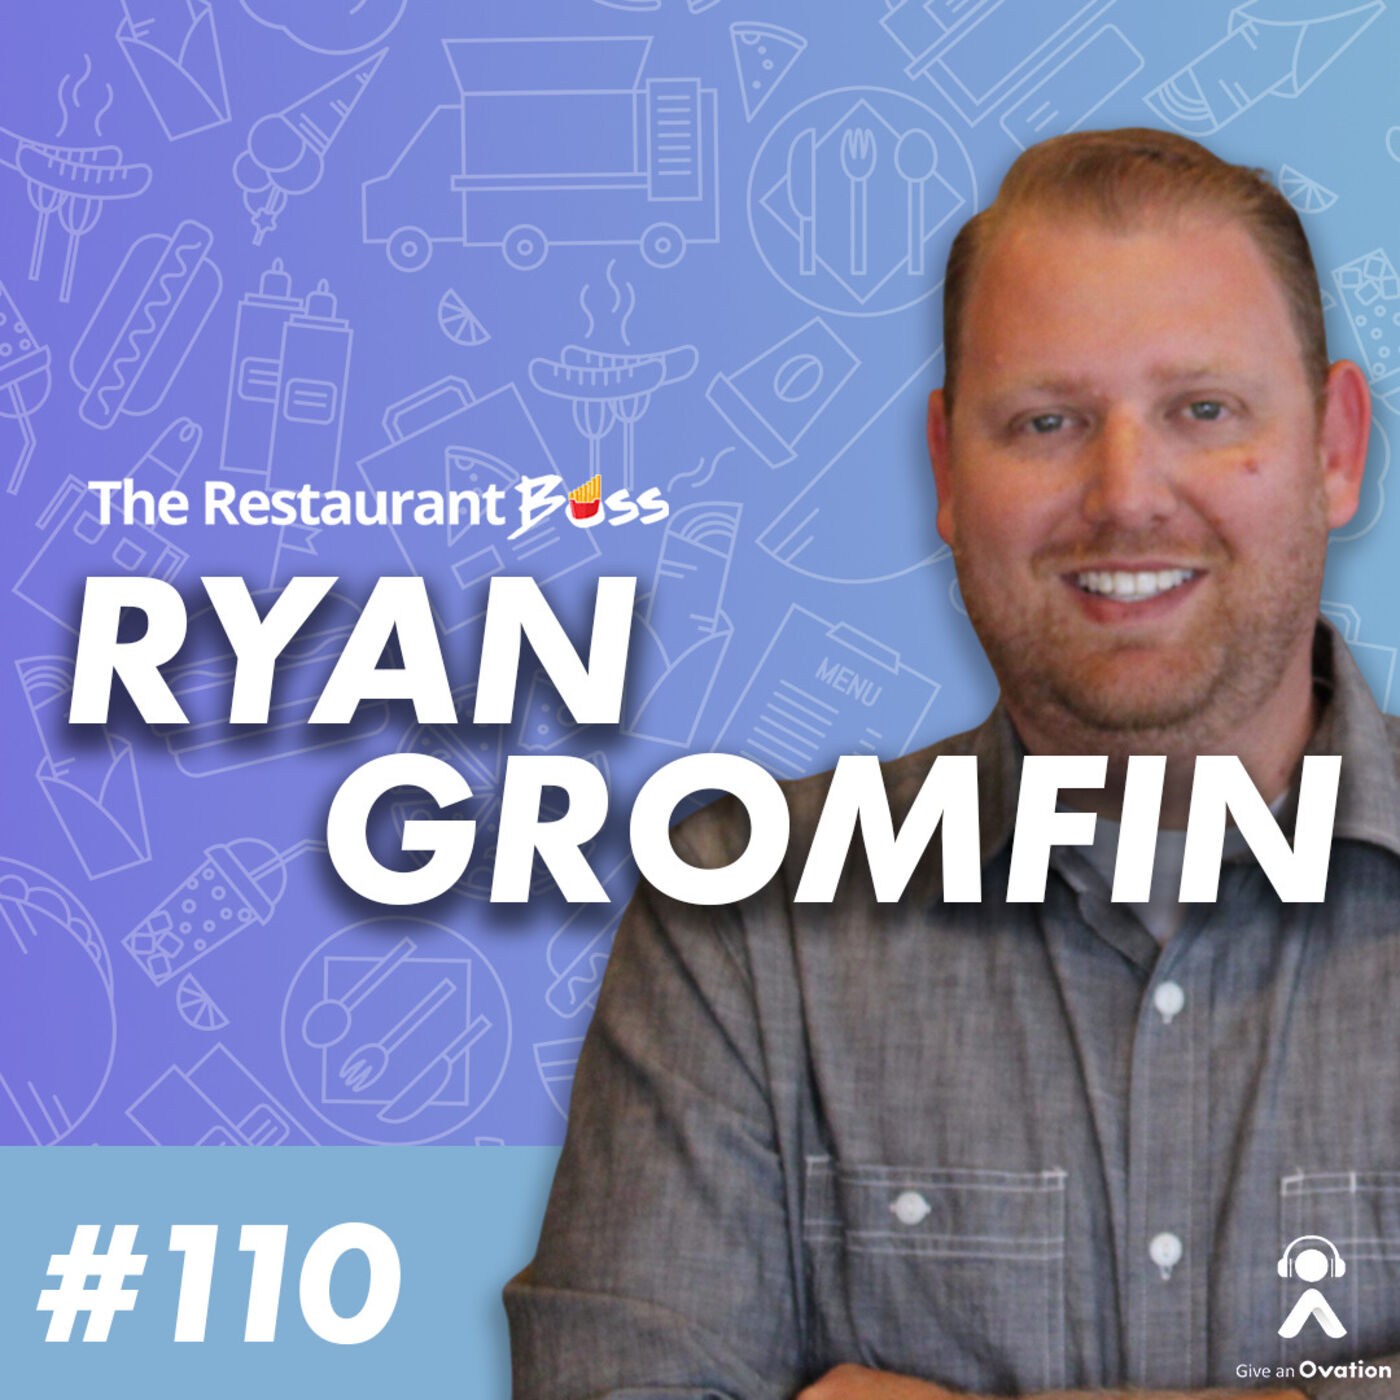 Simple Steps For Finding Staff with Ryan Gromfin